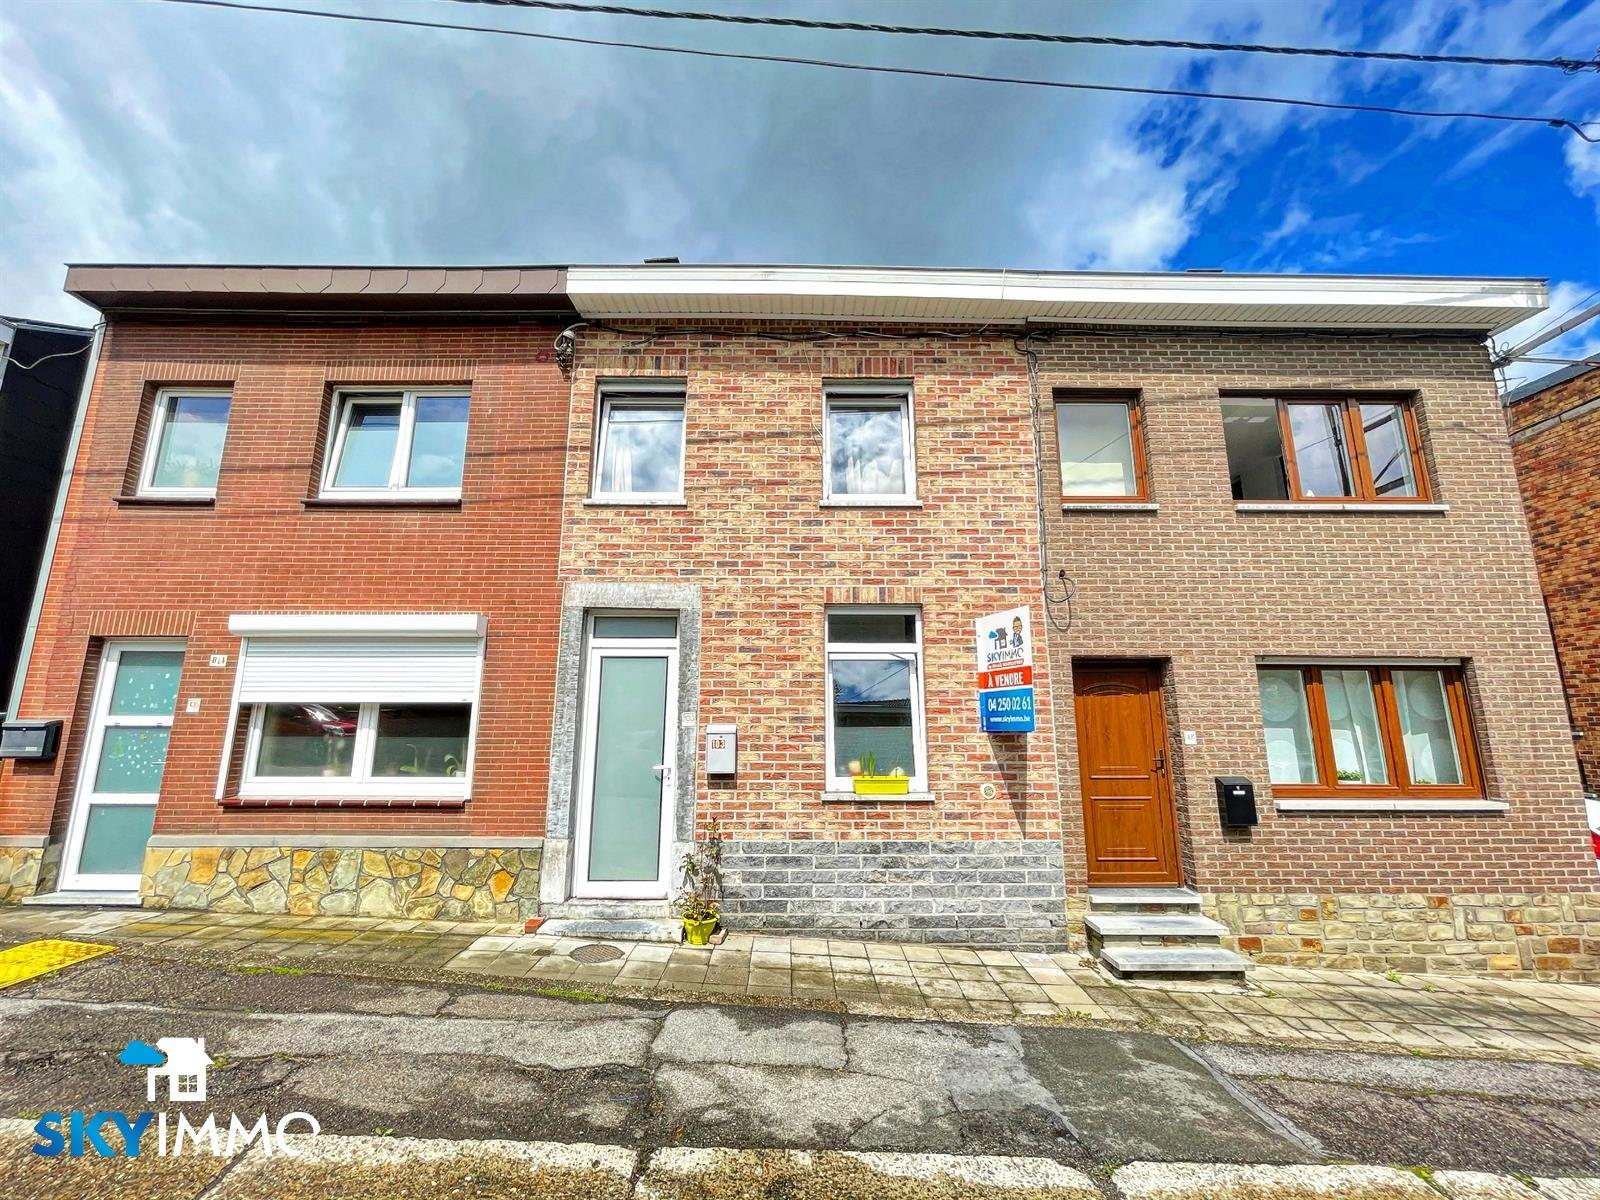 Huis - Flemalle - #4366715-0